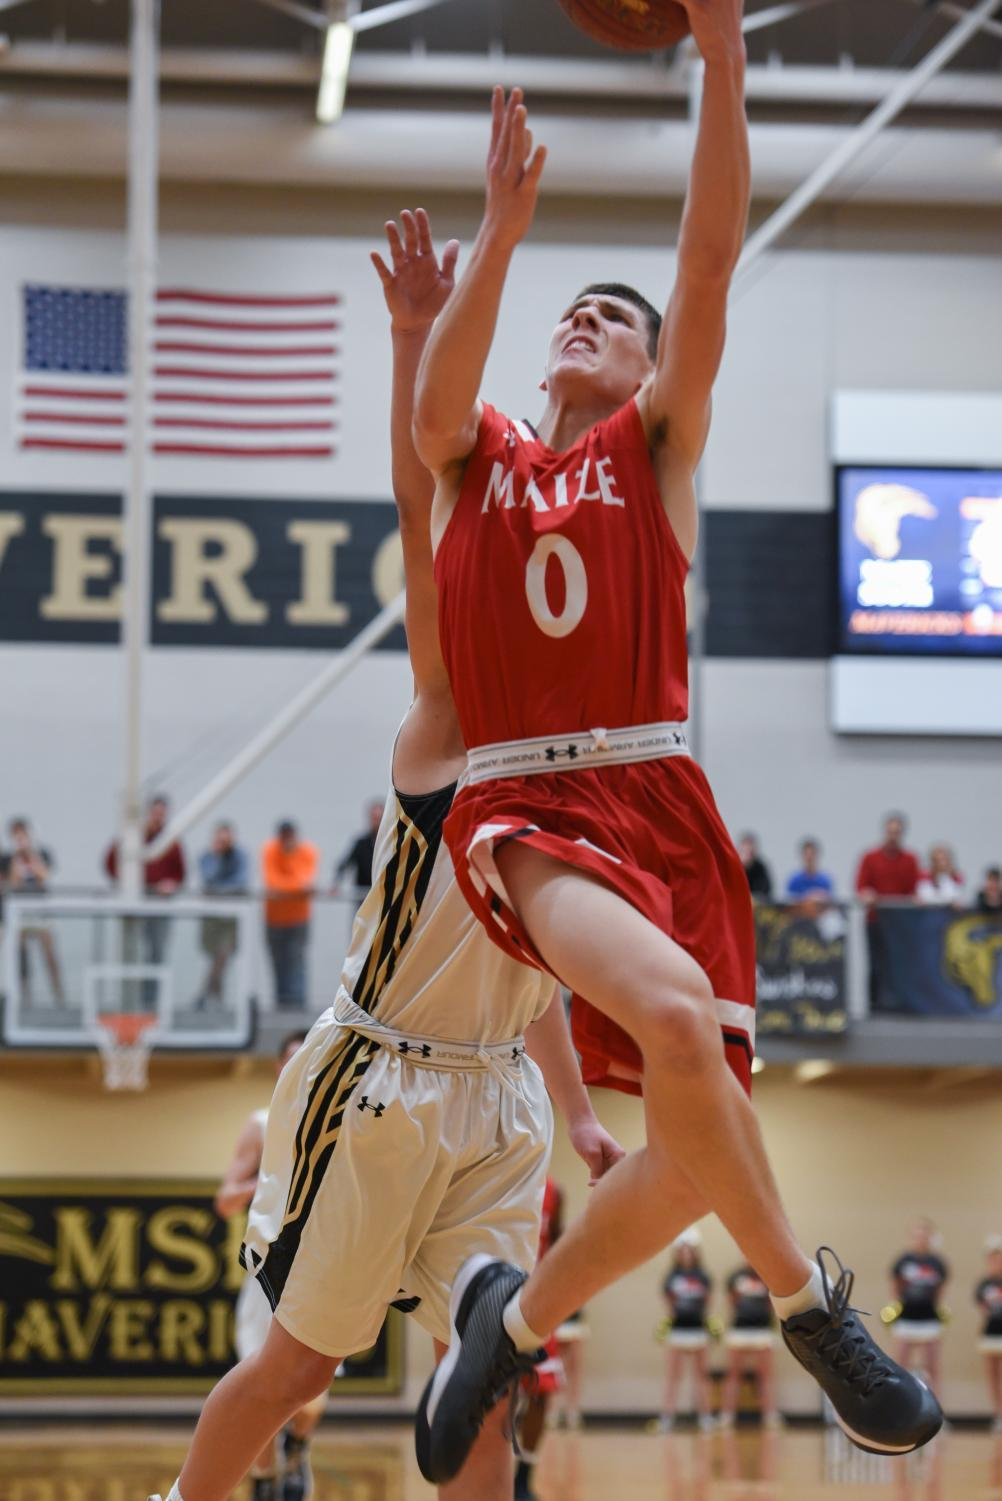 Caleb Grill announced Wednesday that he will sign to play basketball at South Dakota State.